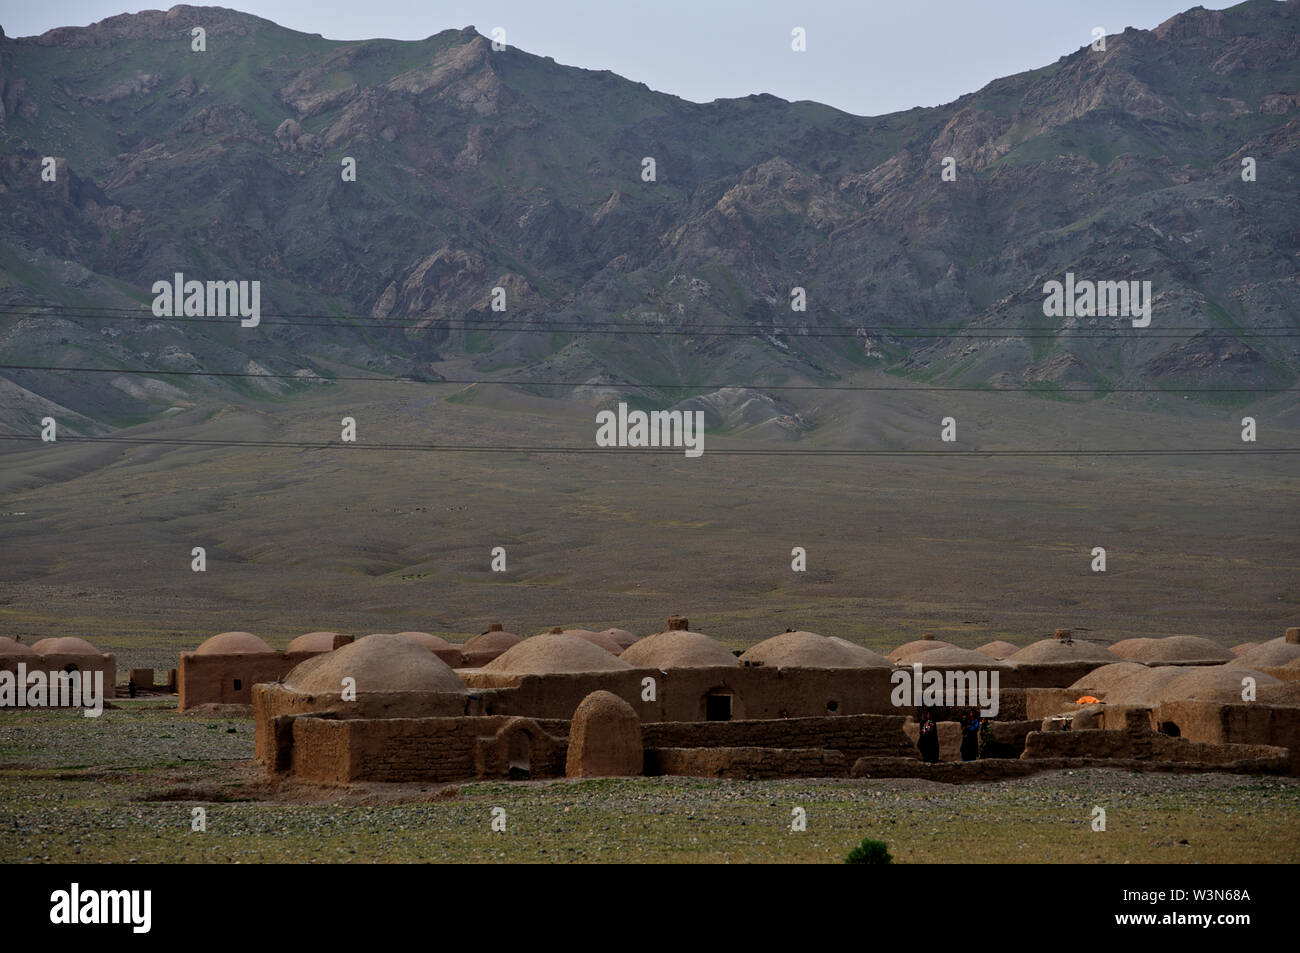 A landscape of a typical village near the city of Herat, Afghanistan. May 7, 2009. Stock Photo